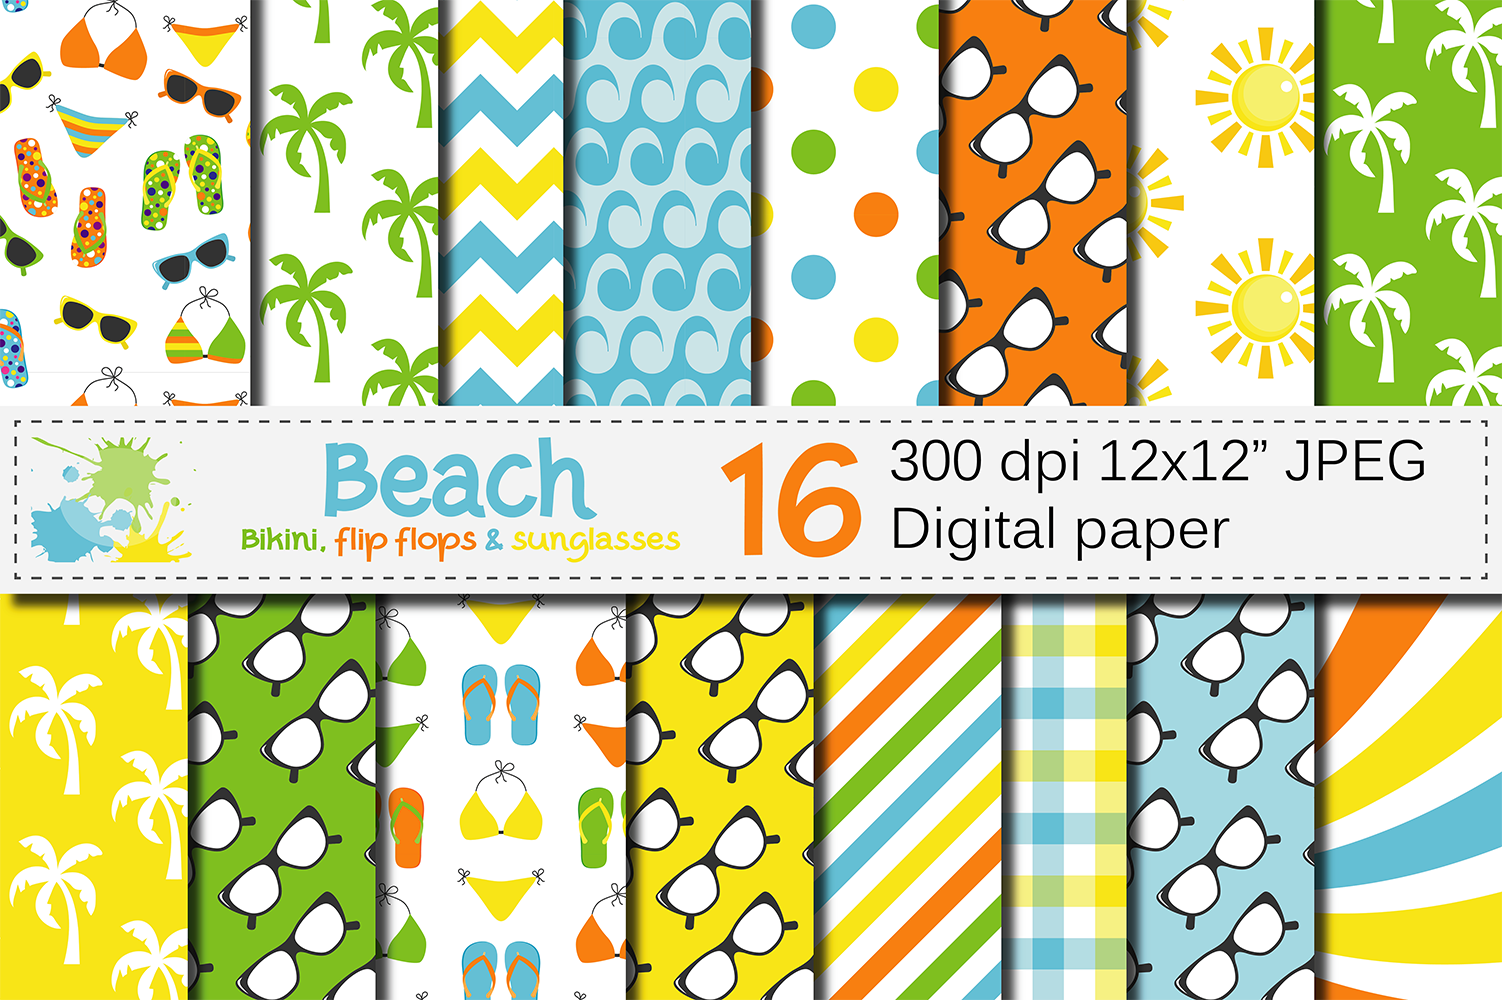 Beach Digital Paper Graphic Backgrounds By VR Digital Design